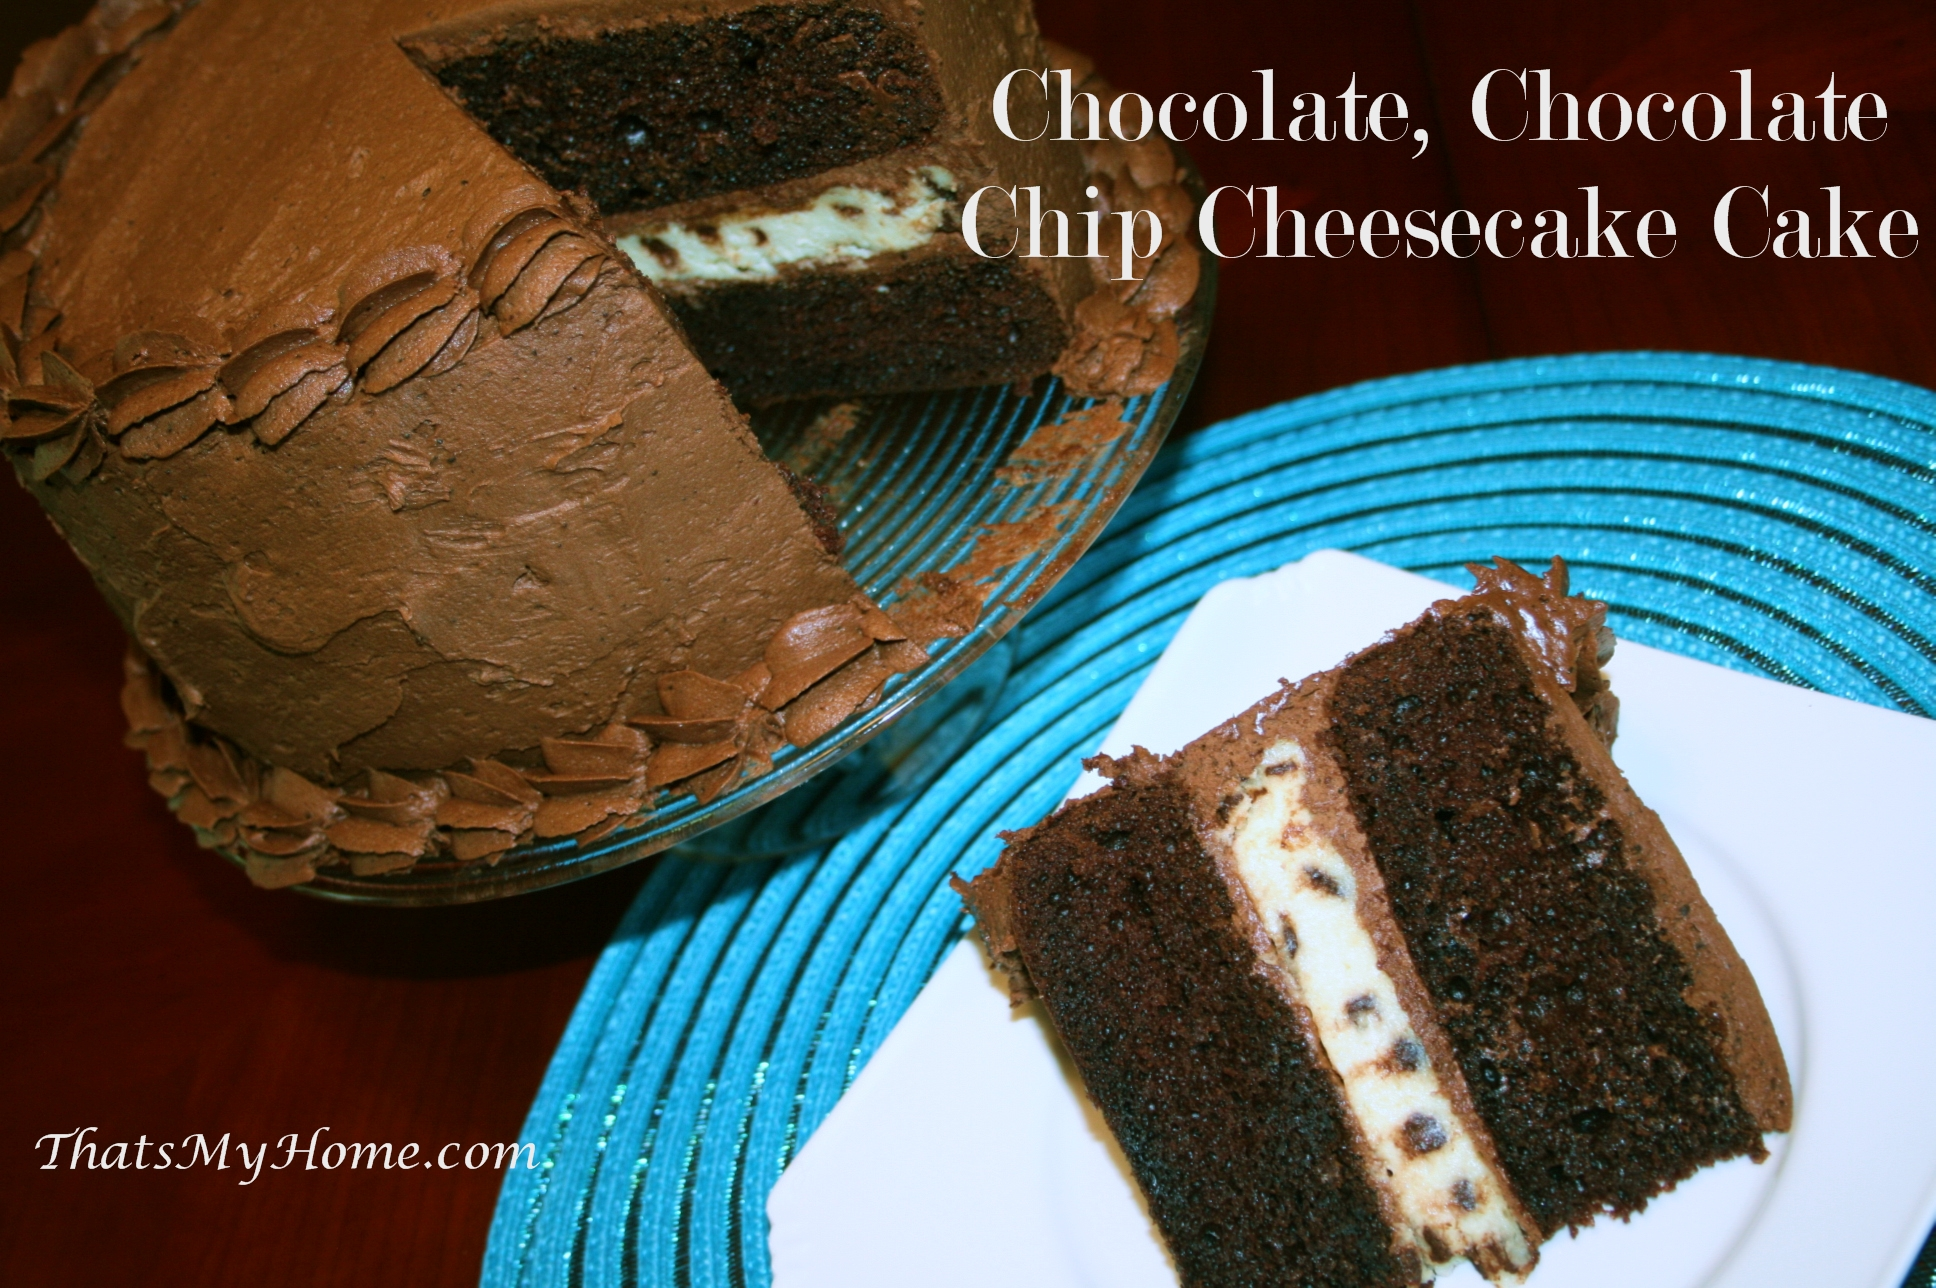 Chocolate, Chocolate Chip Cheesecake Cake - Recipes Food and Cooking